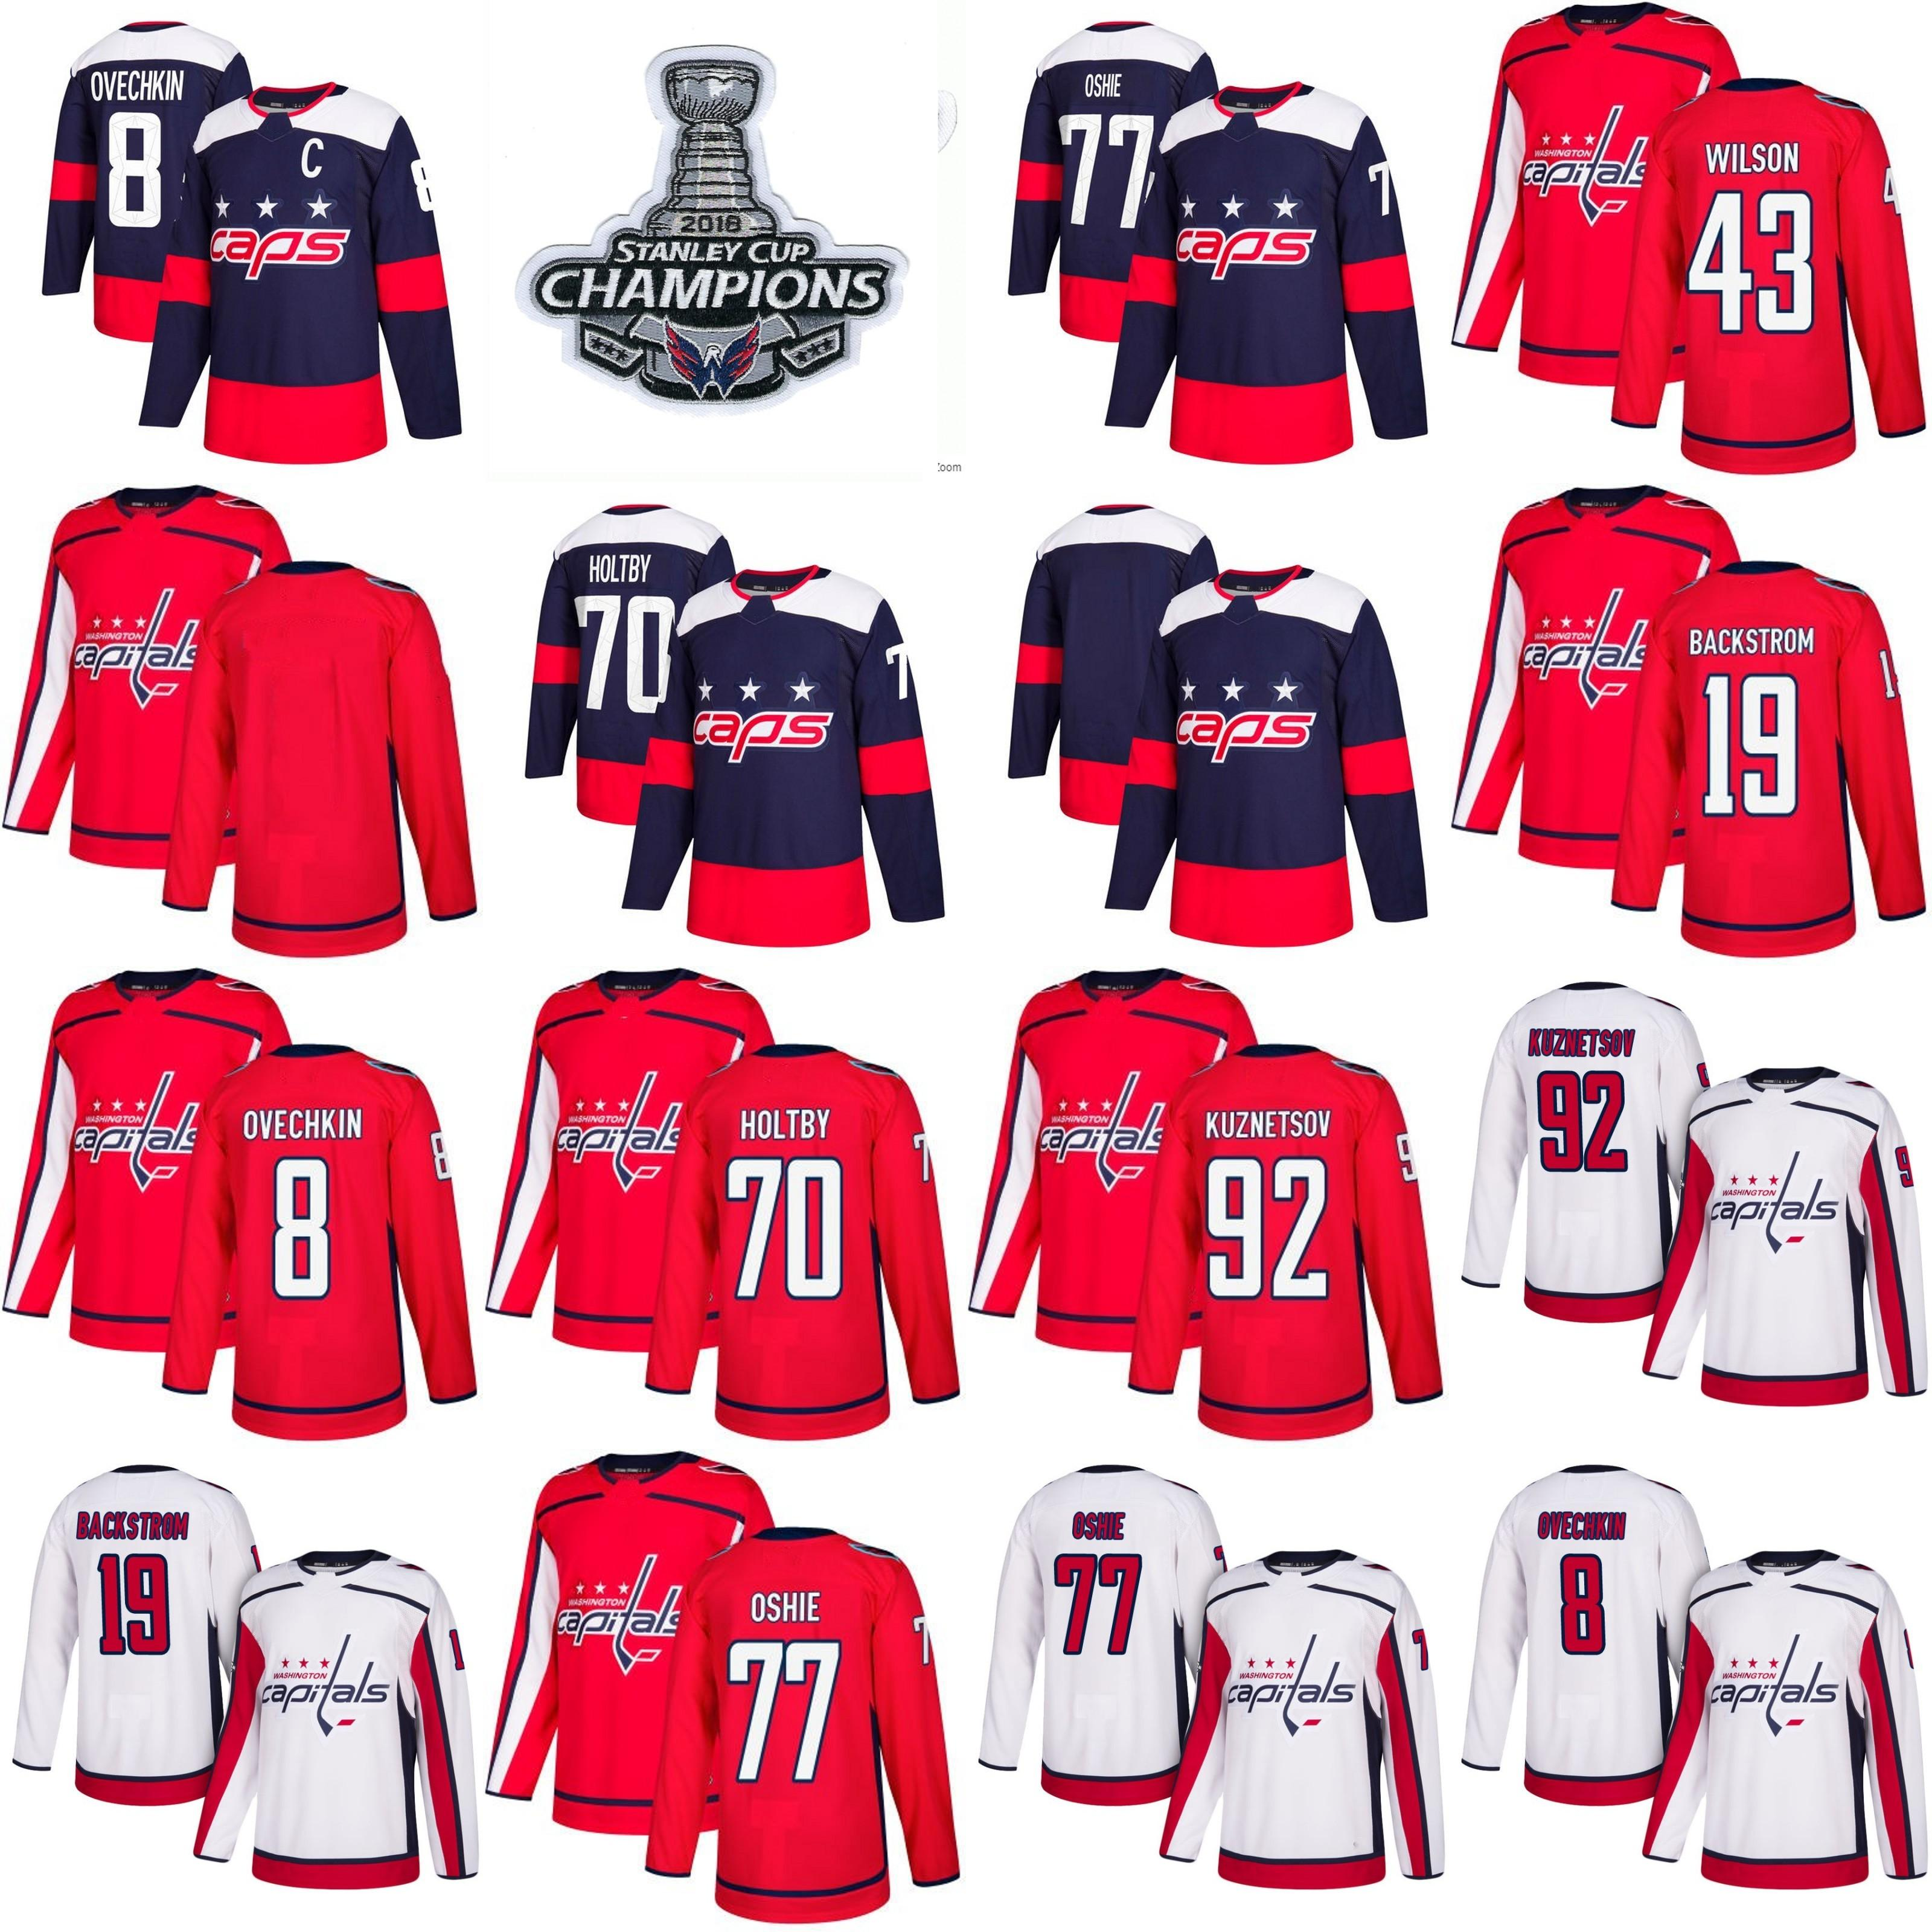 new product b4f34 a8aab 2018 Stanley Cup Champions Youth women Capitals 8 Alex Ovechkin 77 TJ Oshie  70 Braden Holtby 92 Kuznetsov 43 Tom Wilson Backstrom Jerseys